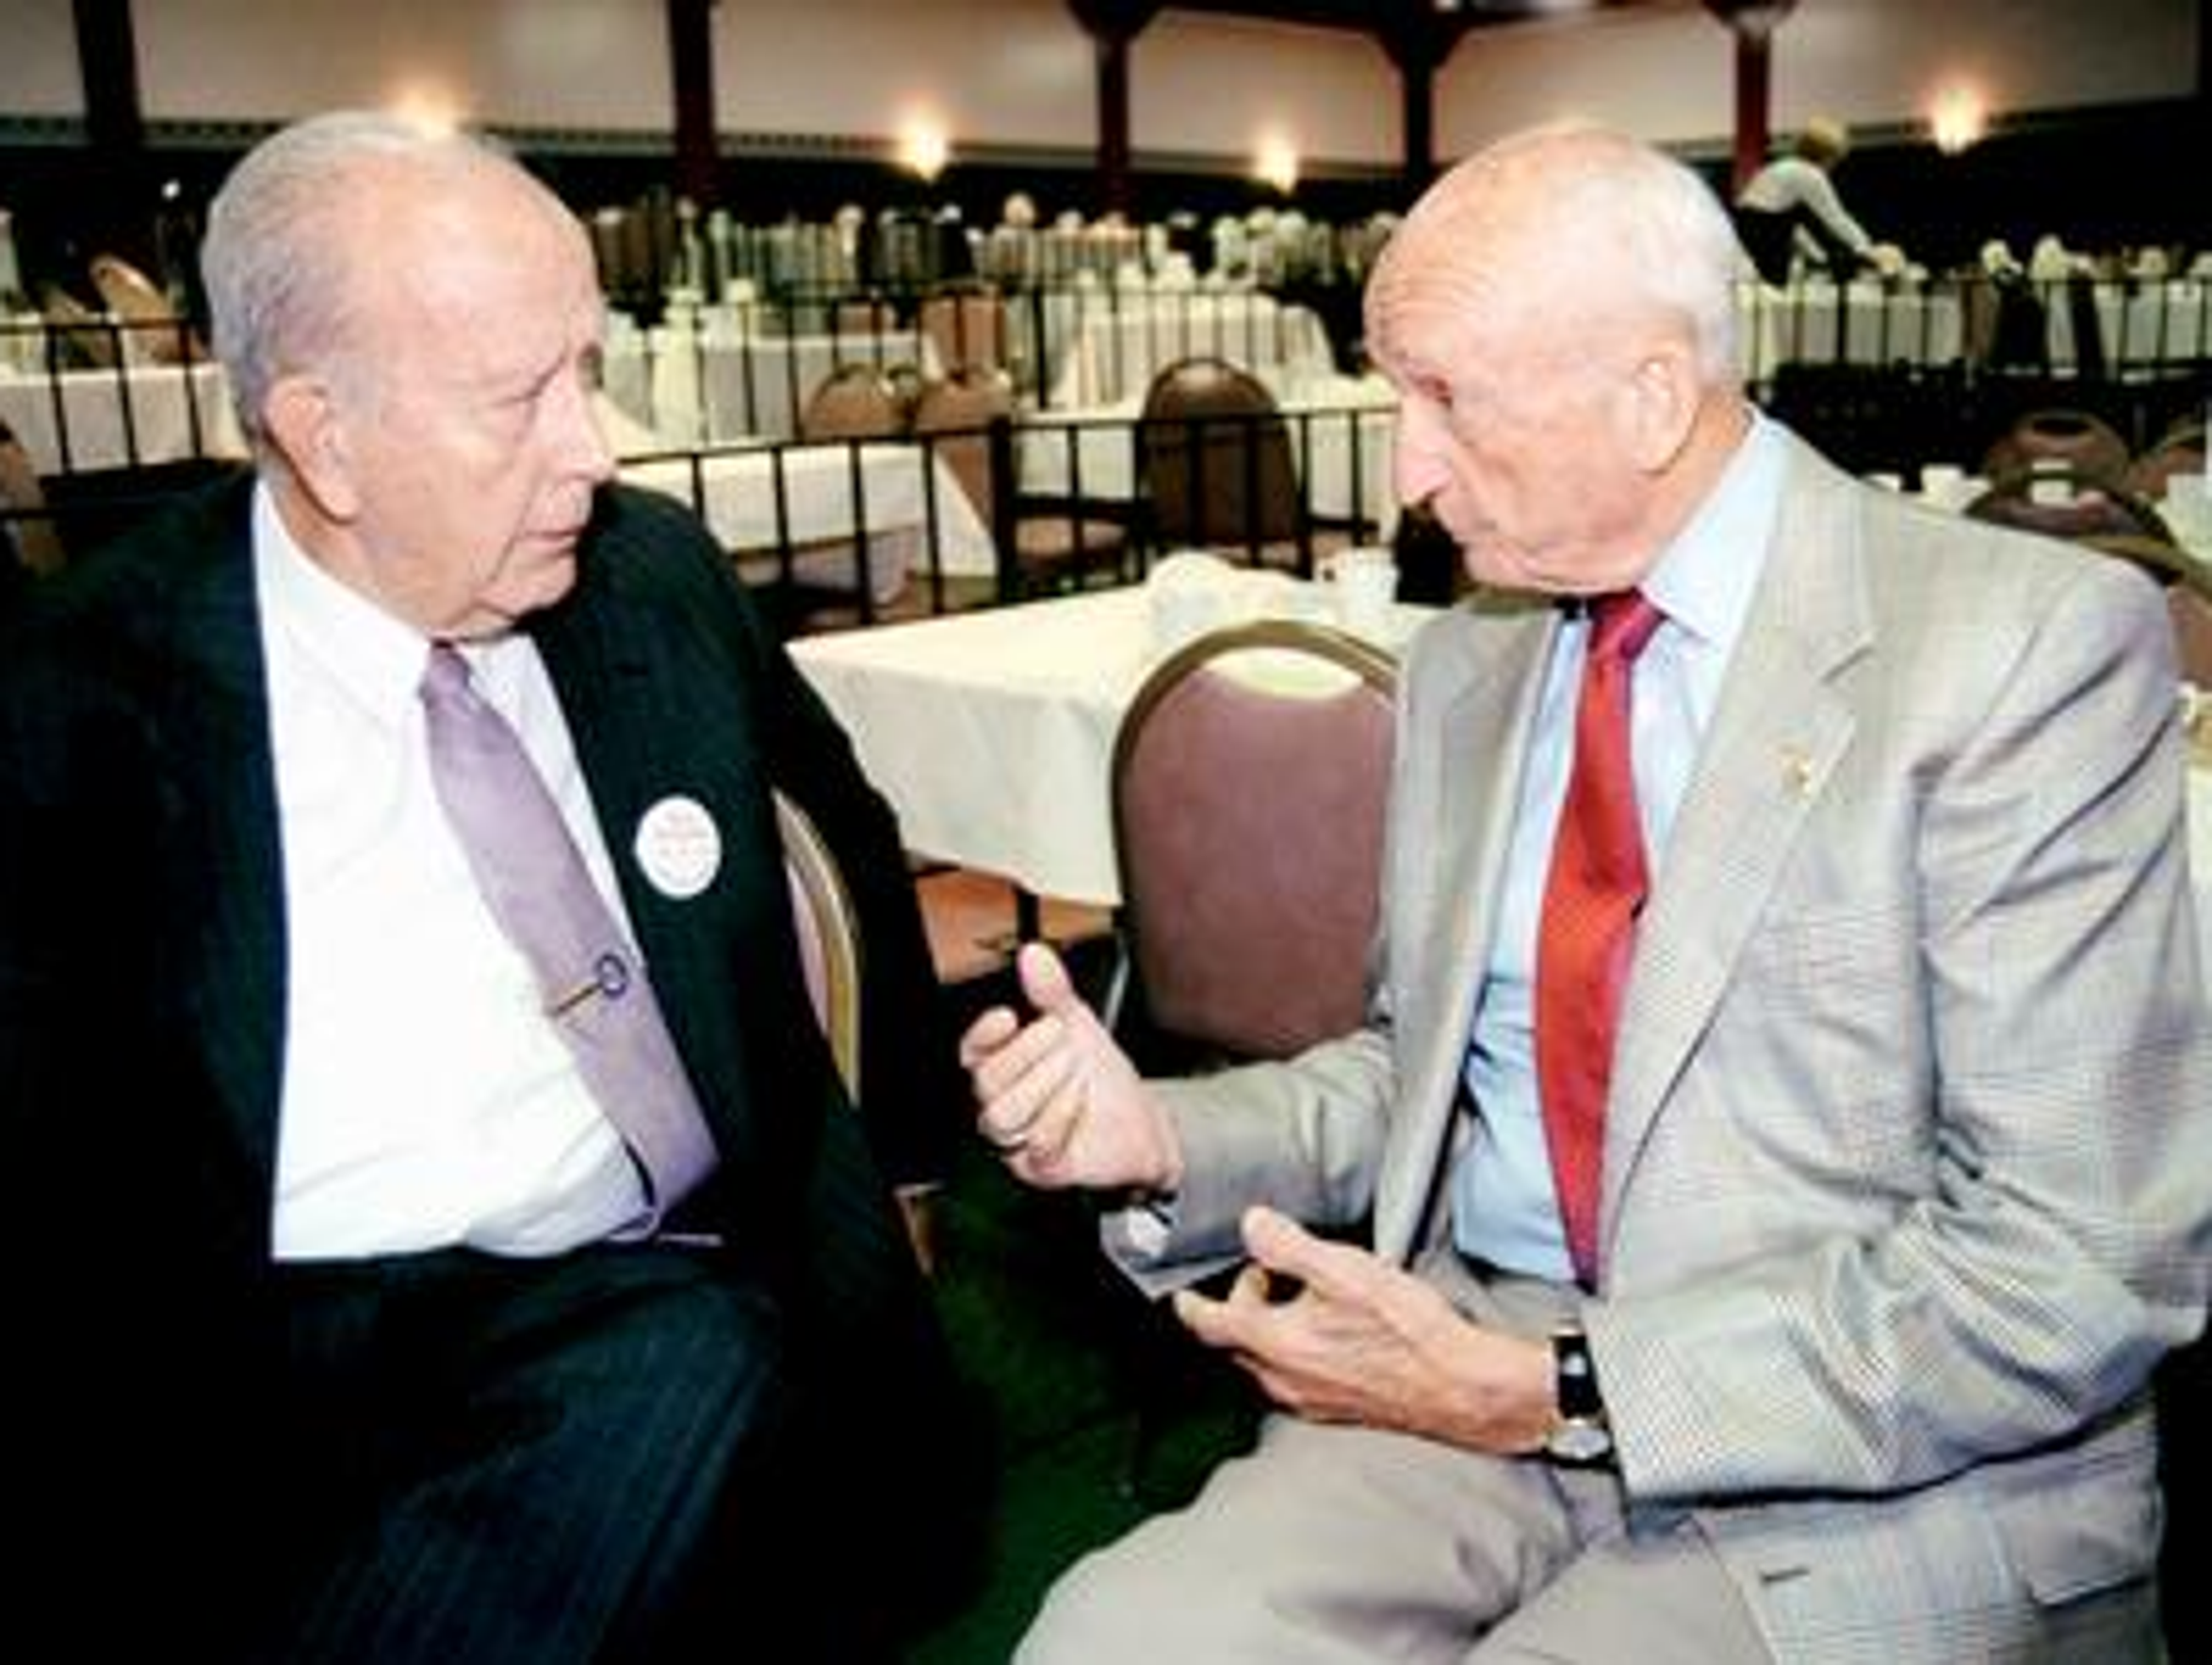 Frank Perdue with William Donald Schaefer in 1998.